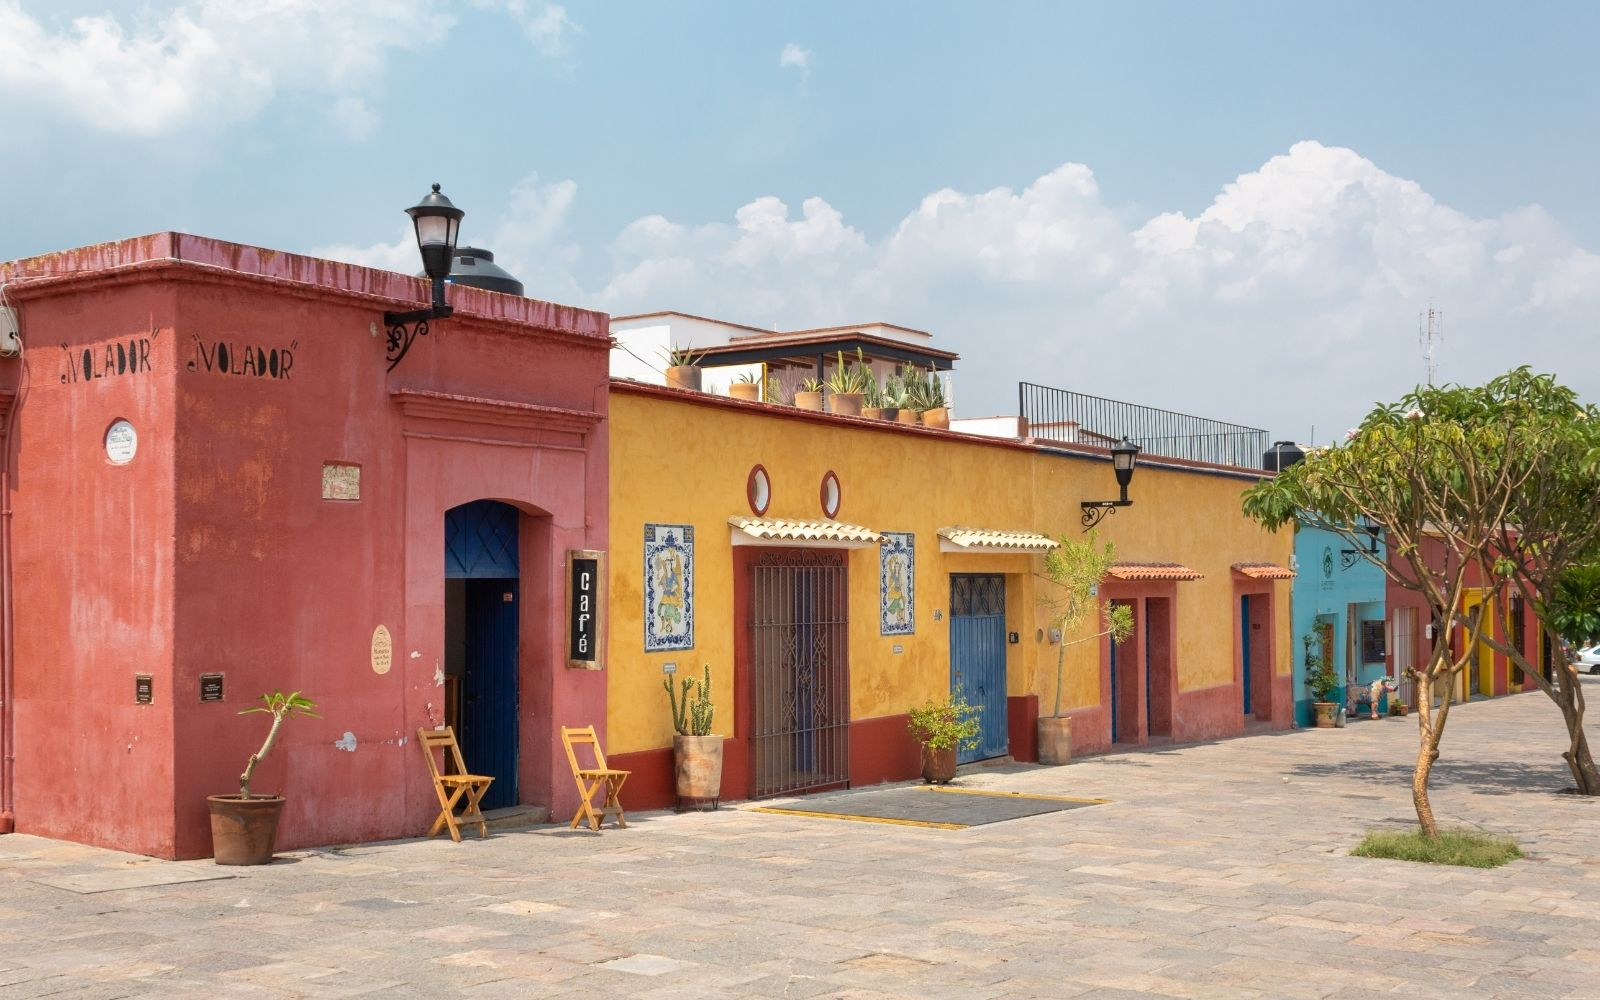 Digital Nomad Guide to Living in Oaxaca, Mexico